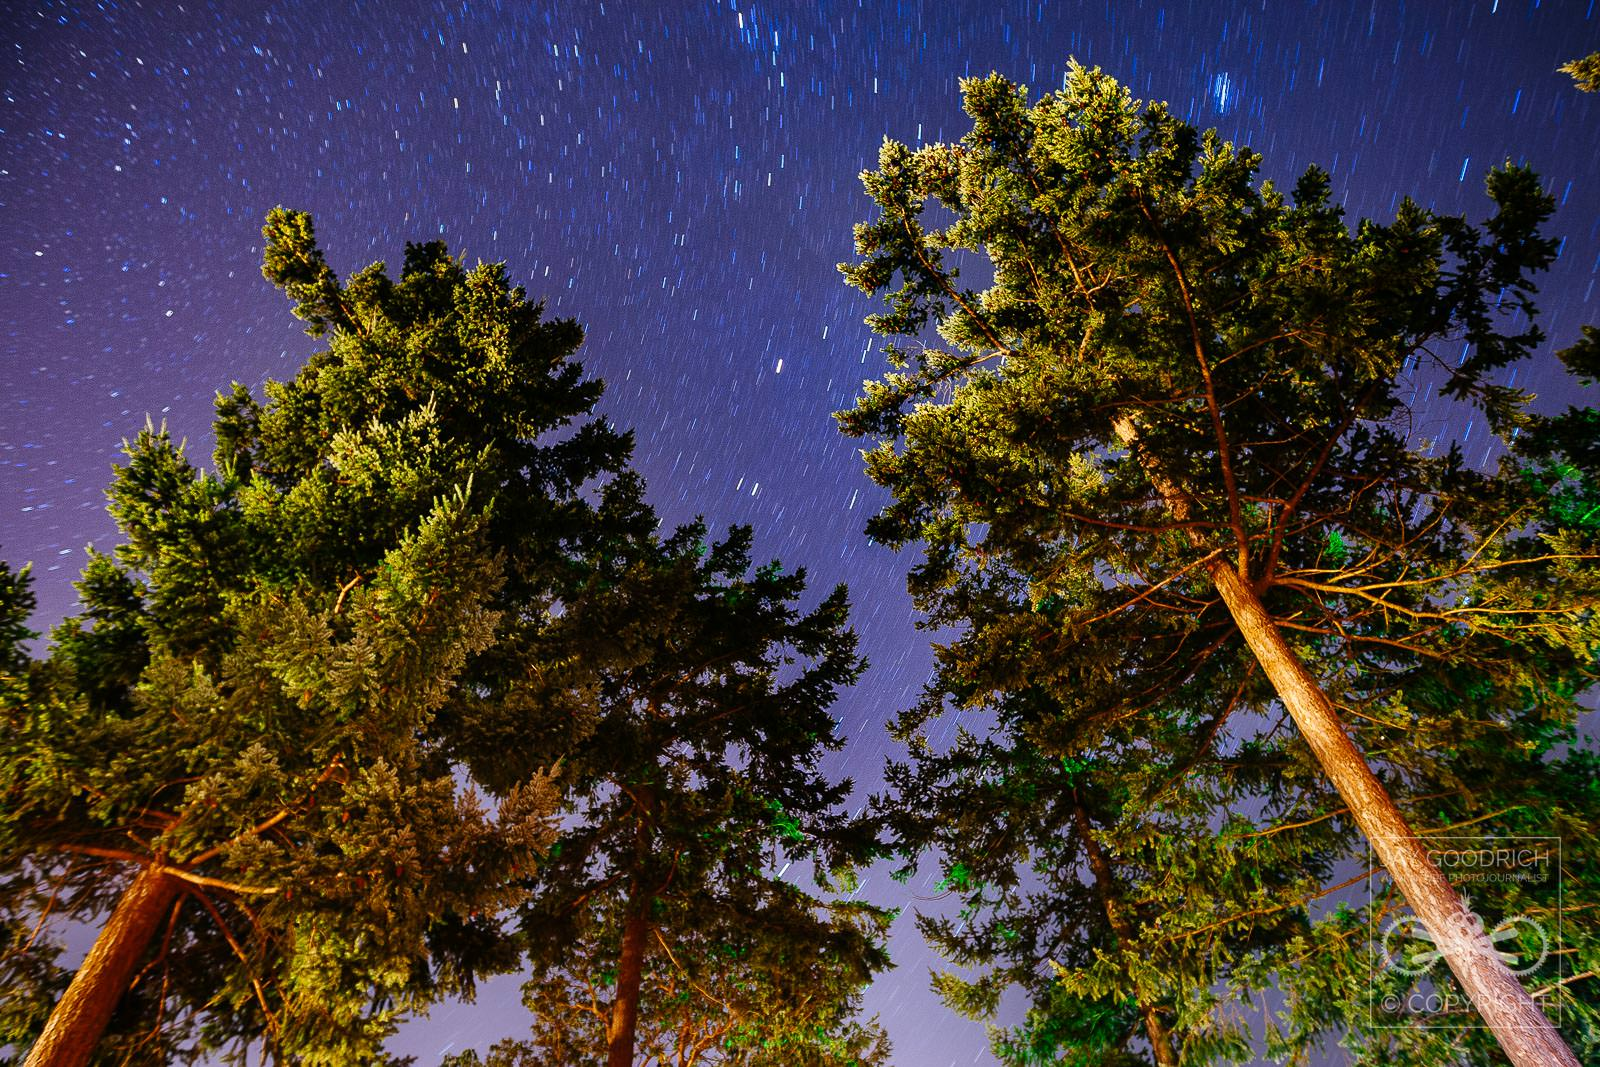 Star Trail Time-lapse by Jay Goodrich